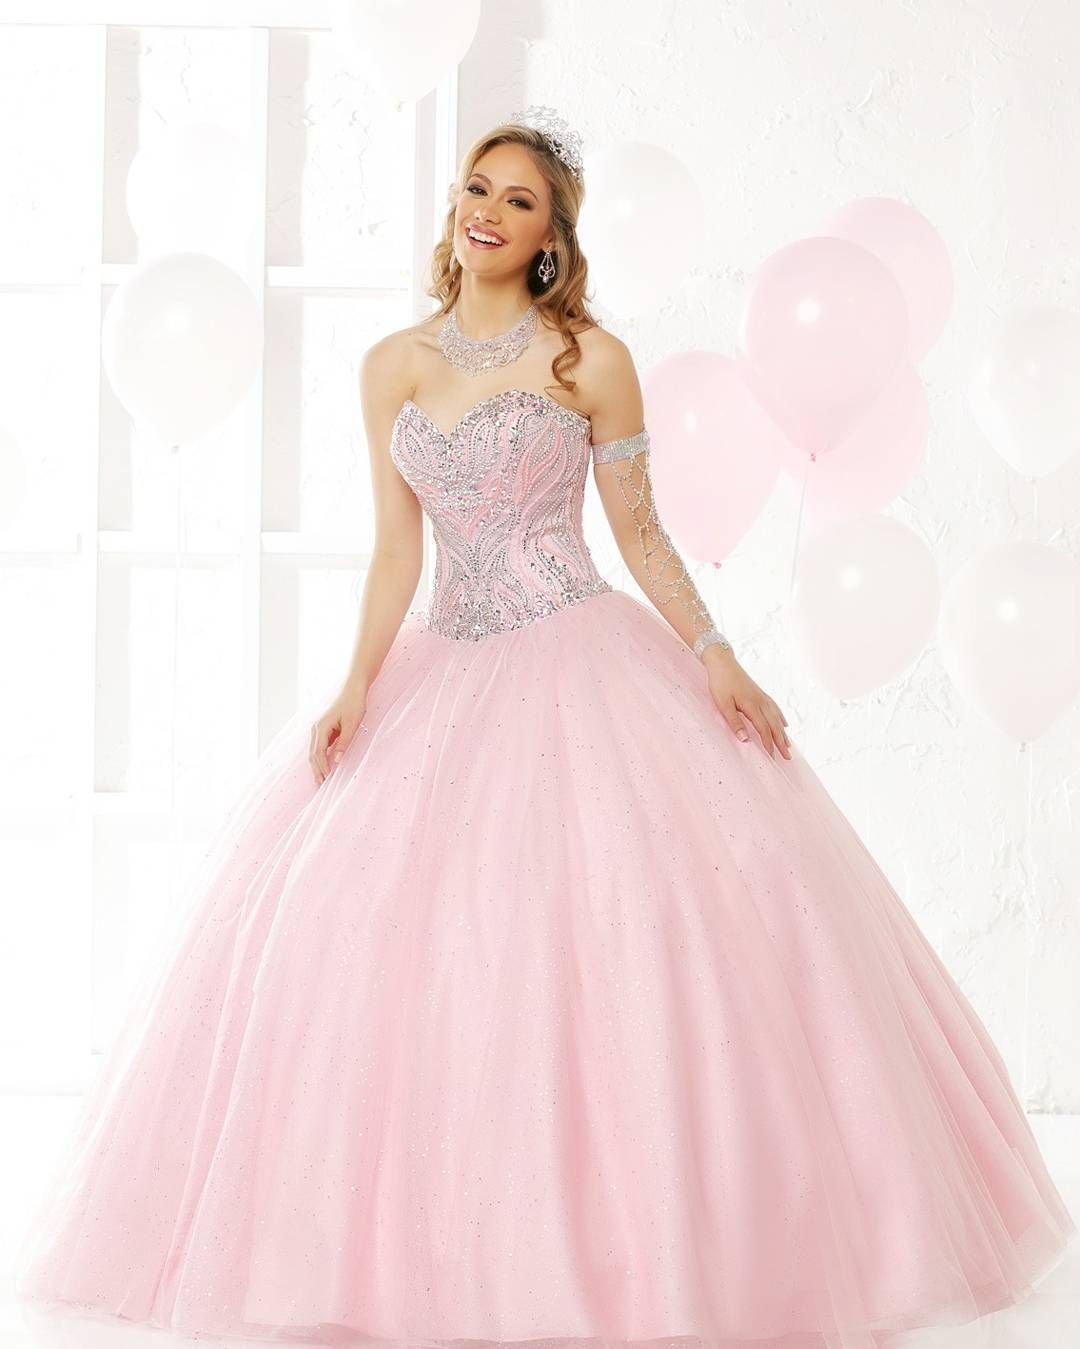 Style featuring color upinku is made of gorgeous glitter tulle